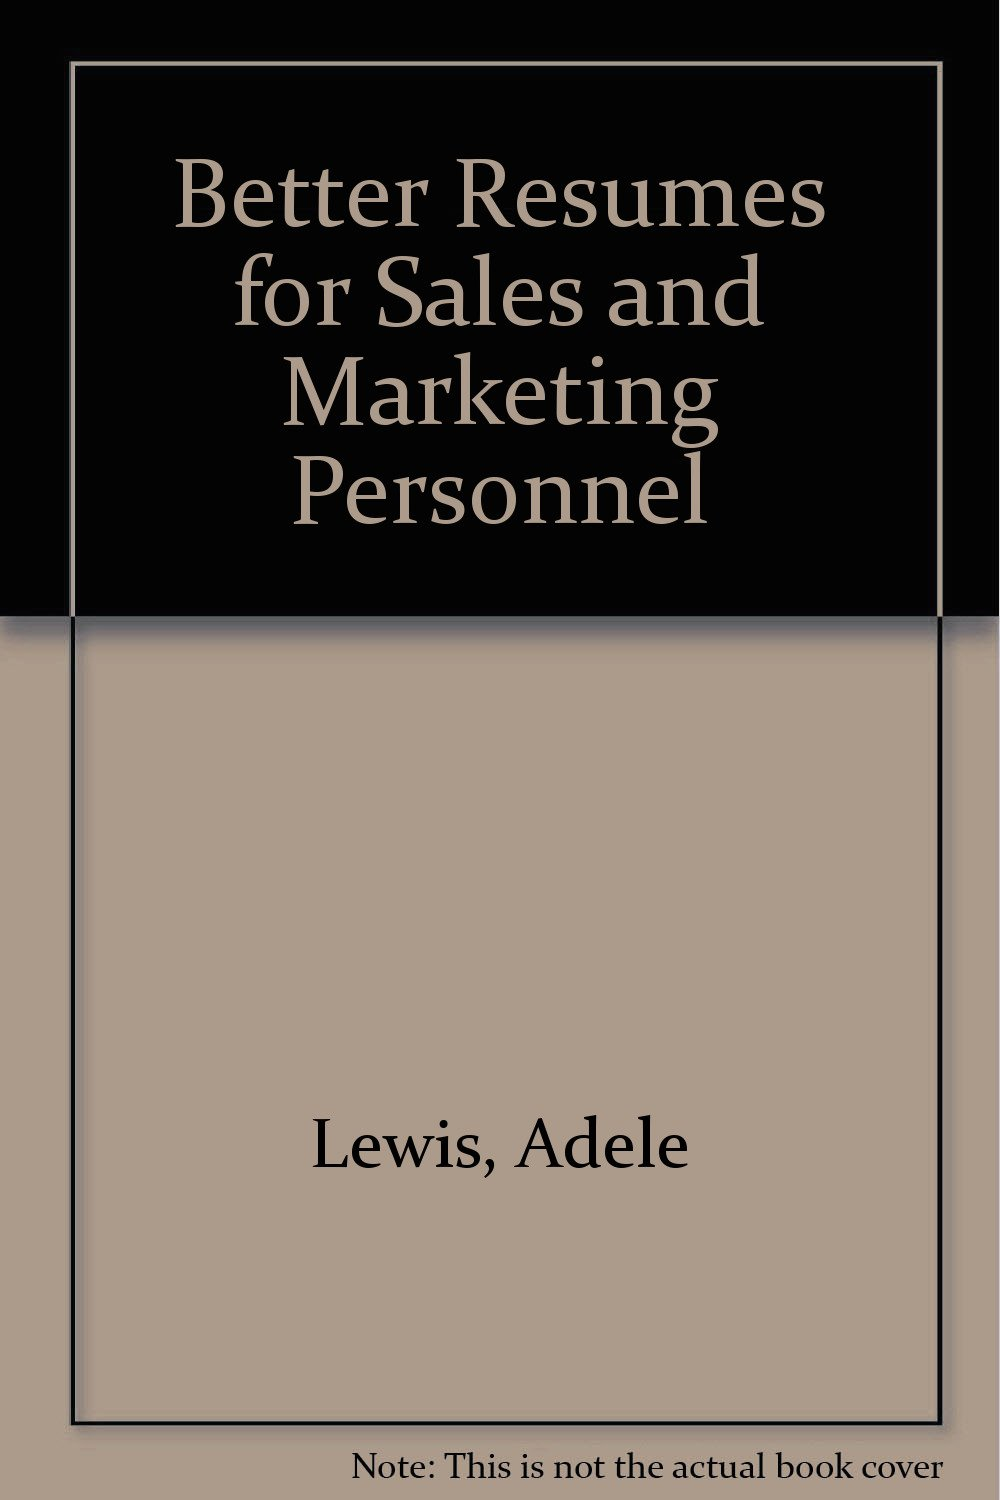 better resumes for sales and marketing personnel adele lewis